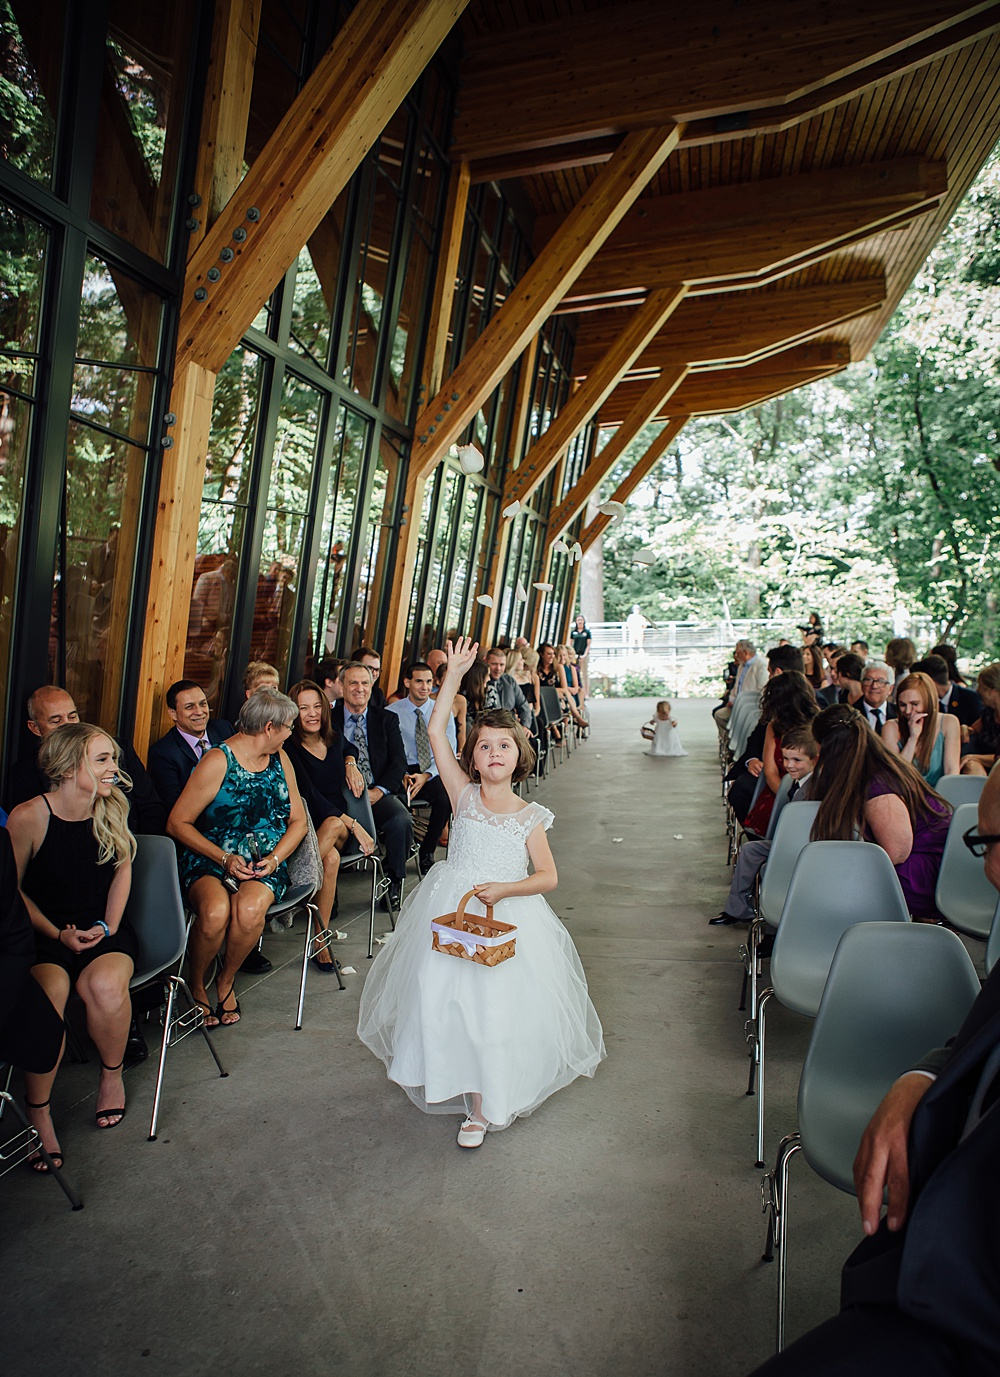 Bissell_Treehouse_Wedding_photography077.jpg